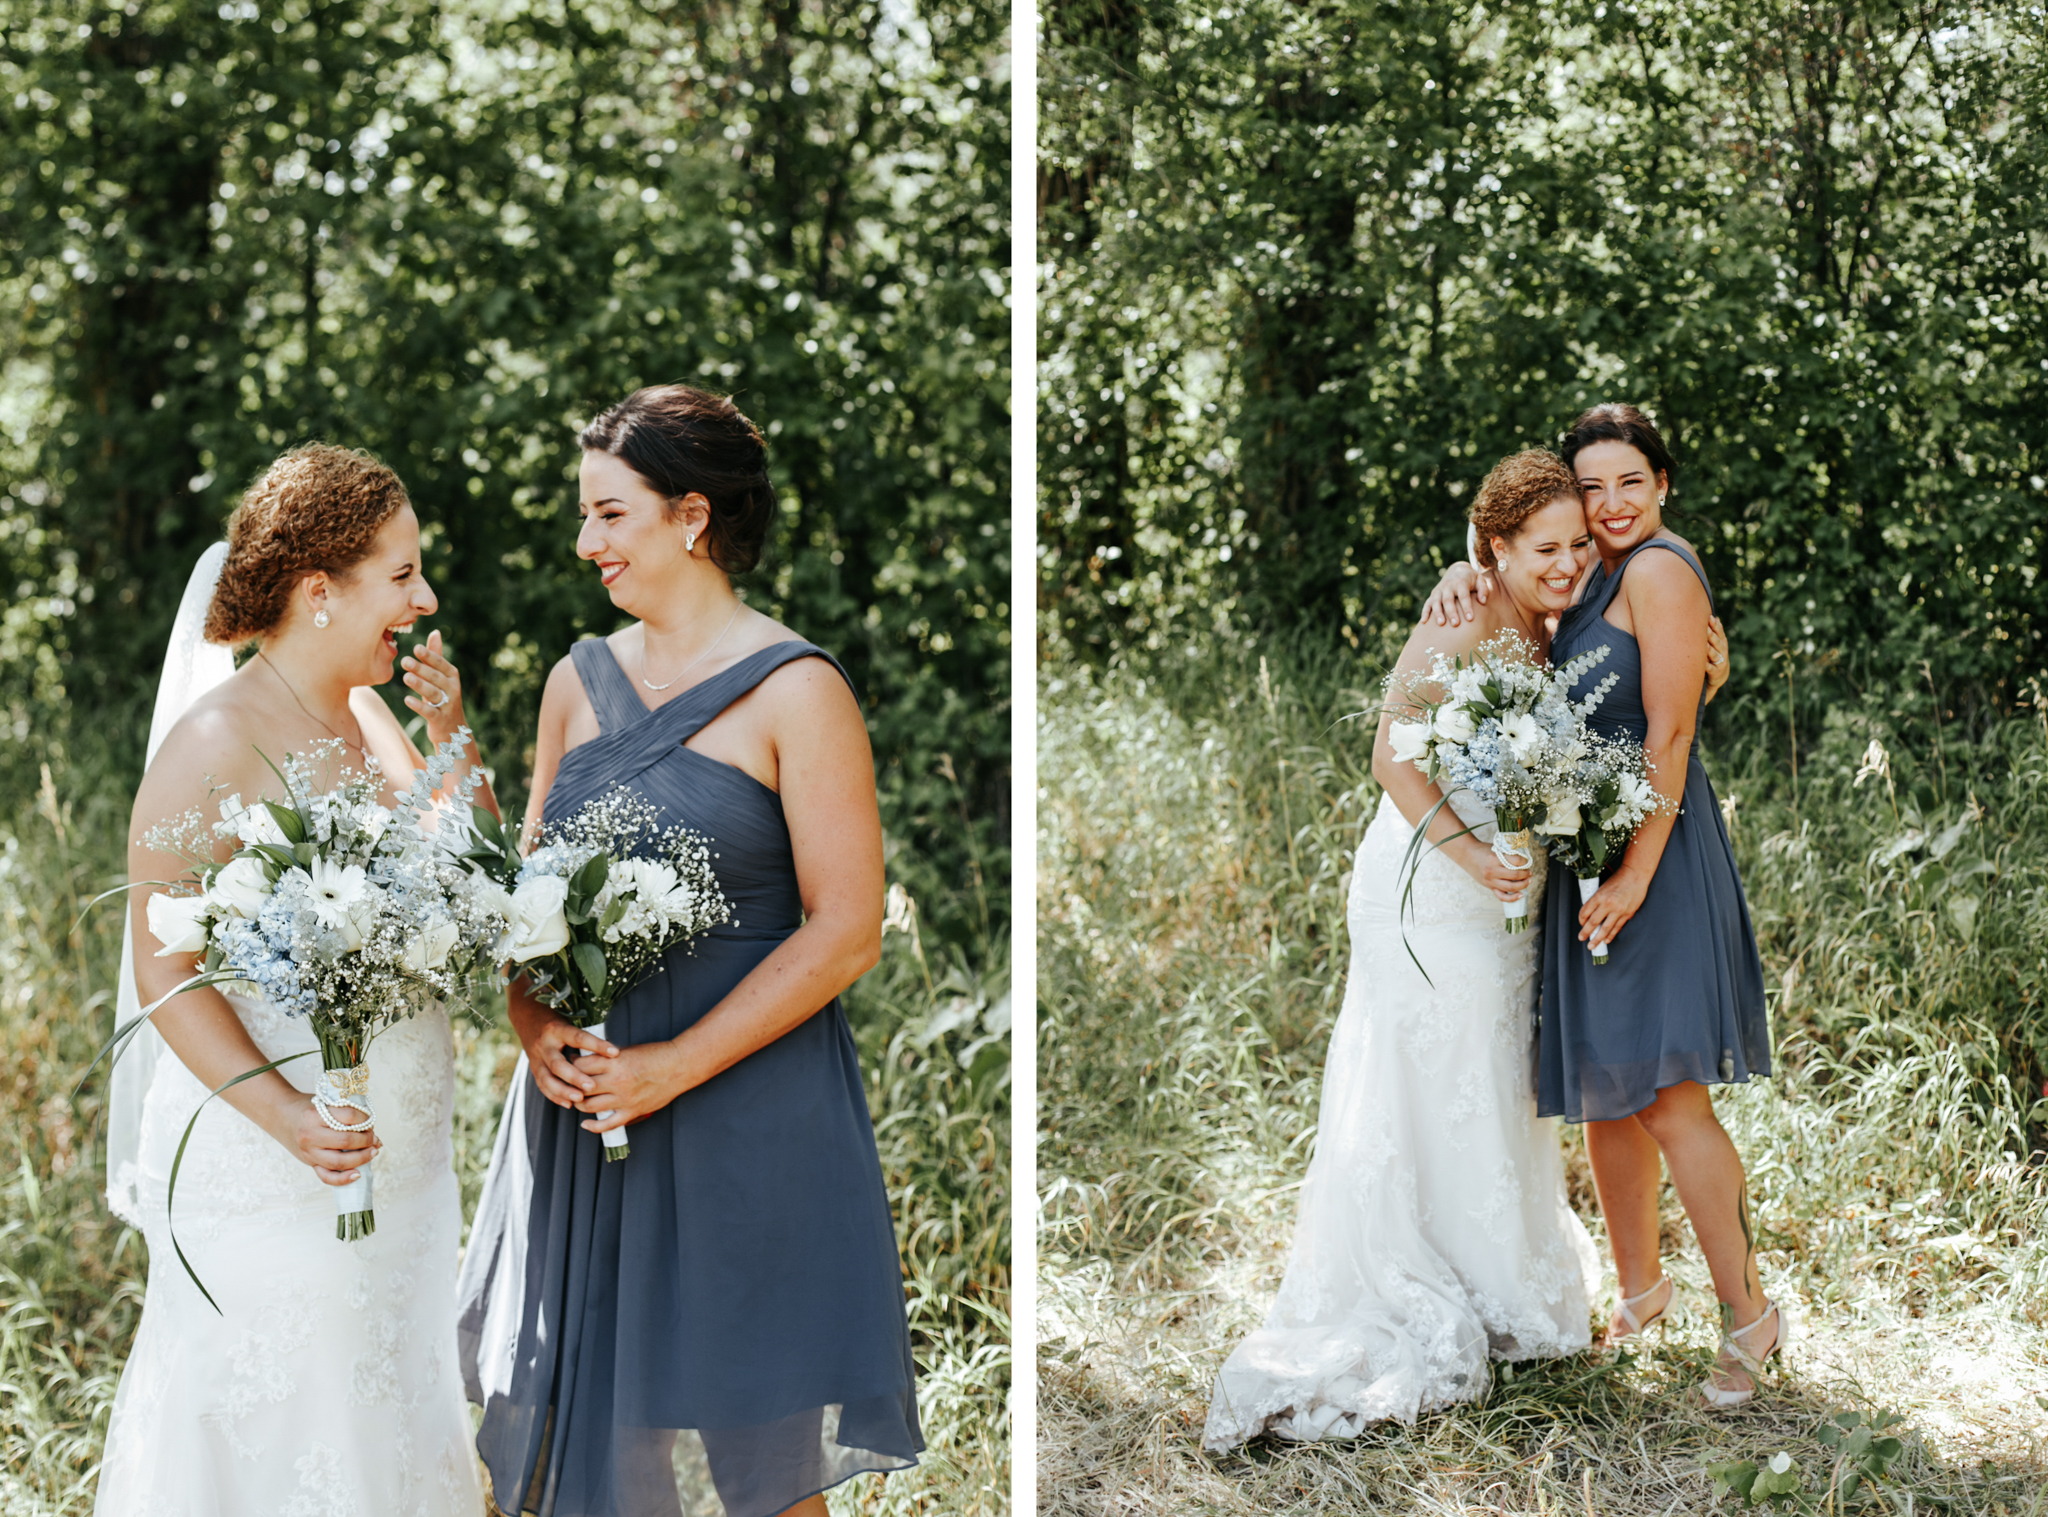 lethbridge-wedding-photographer-love-and-be-loved-photography-trent-danielle-galt-reception-picture-image-photo-133.jpg